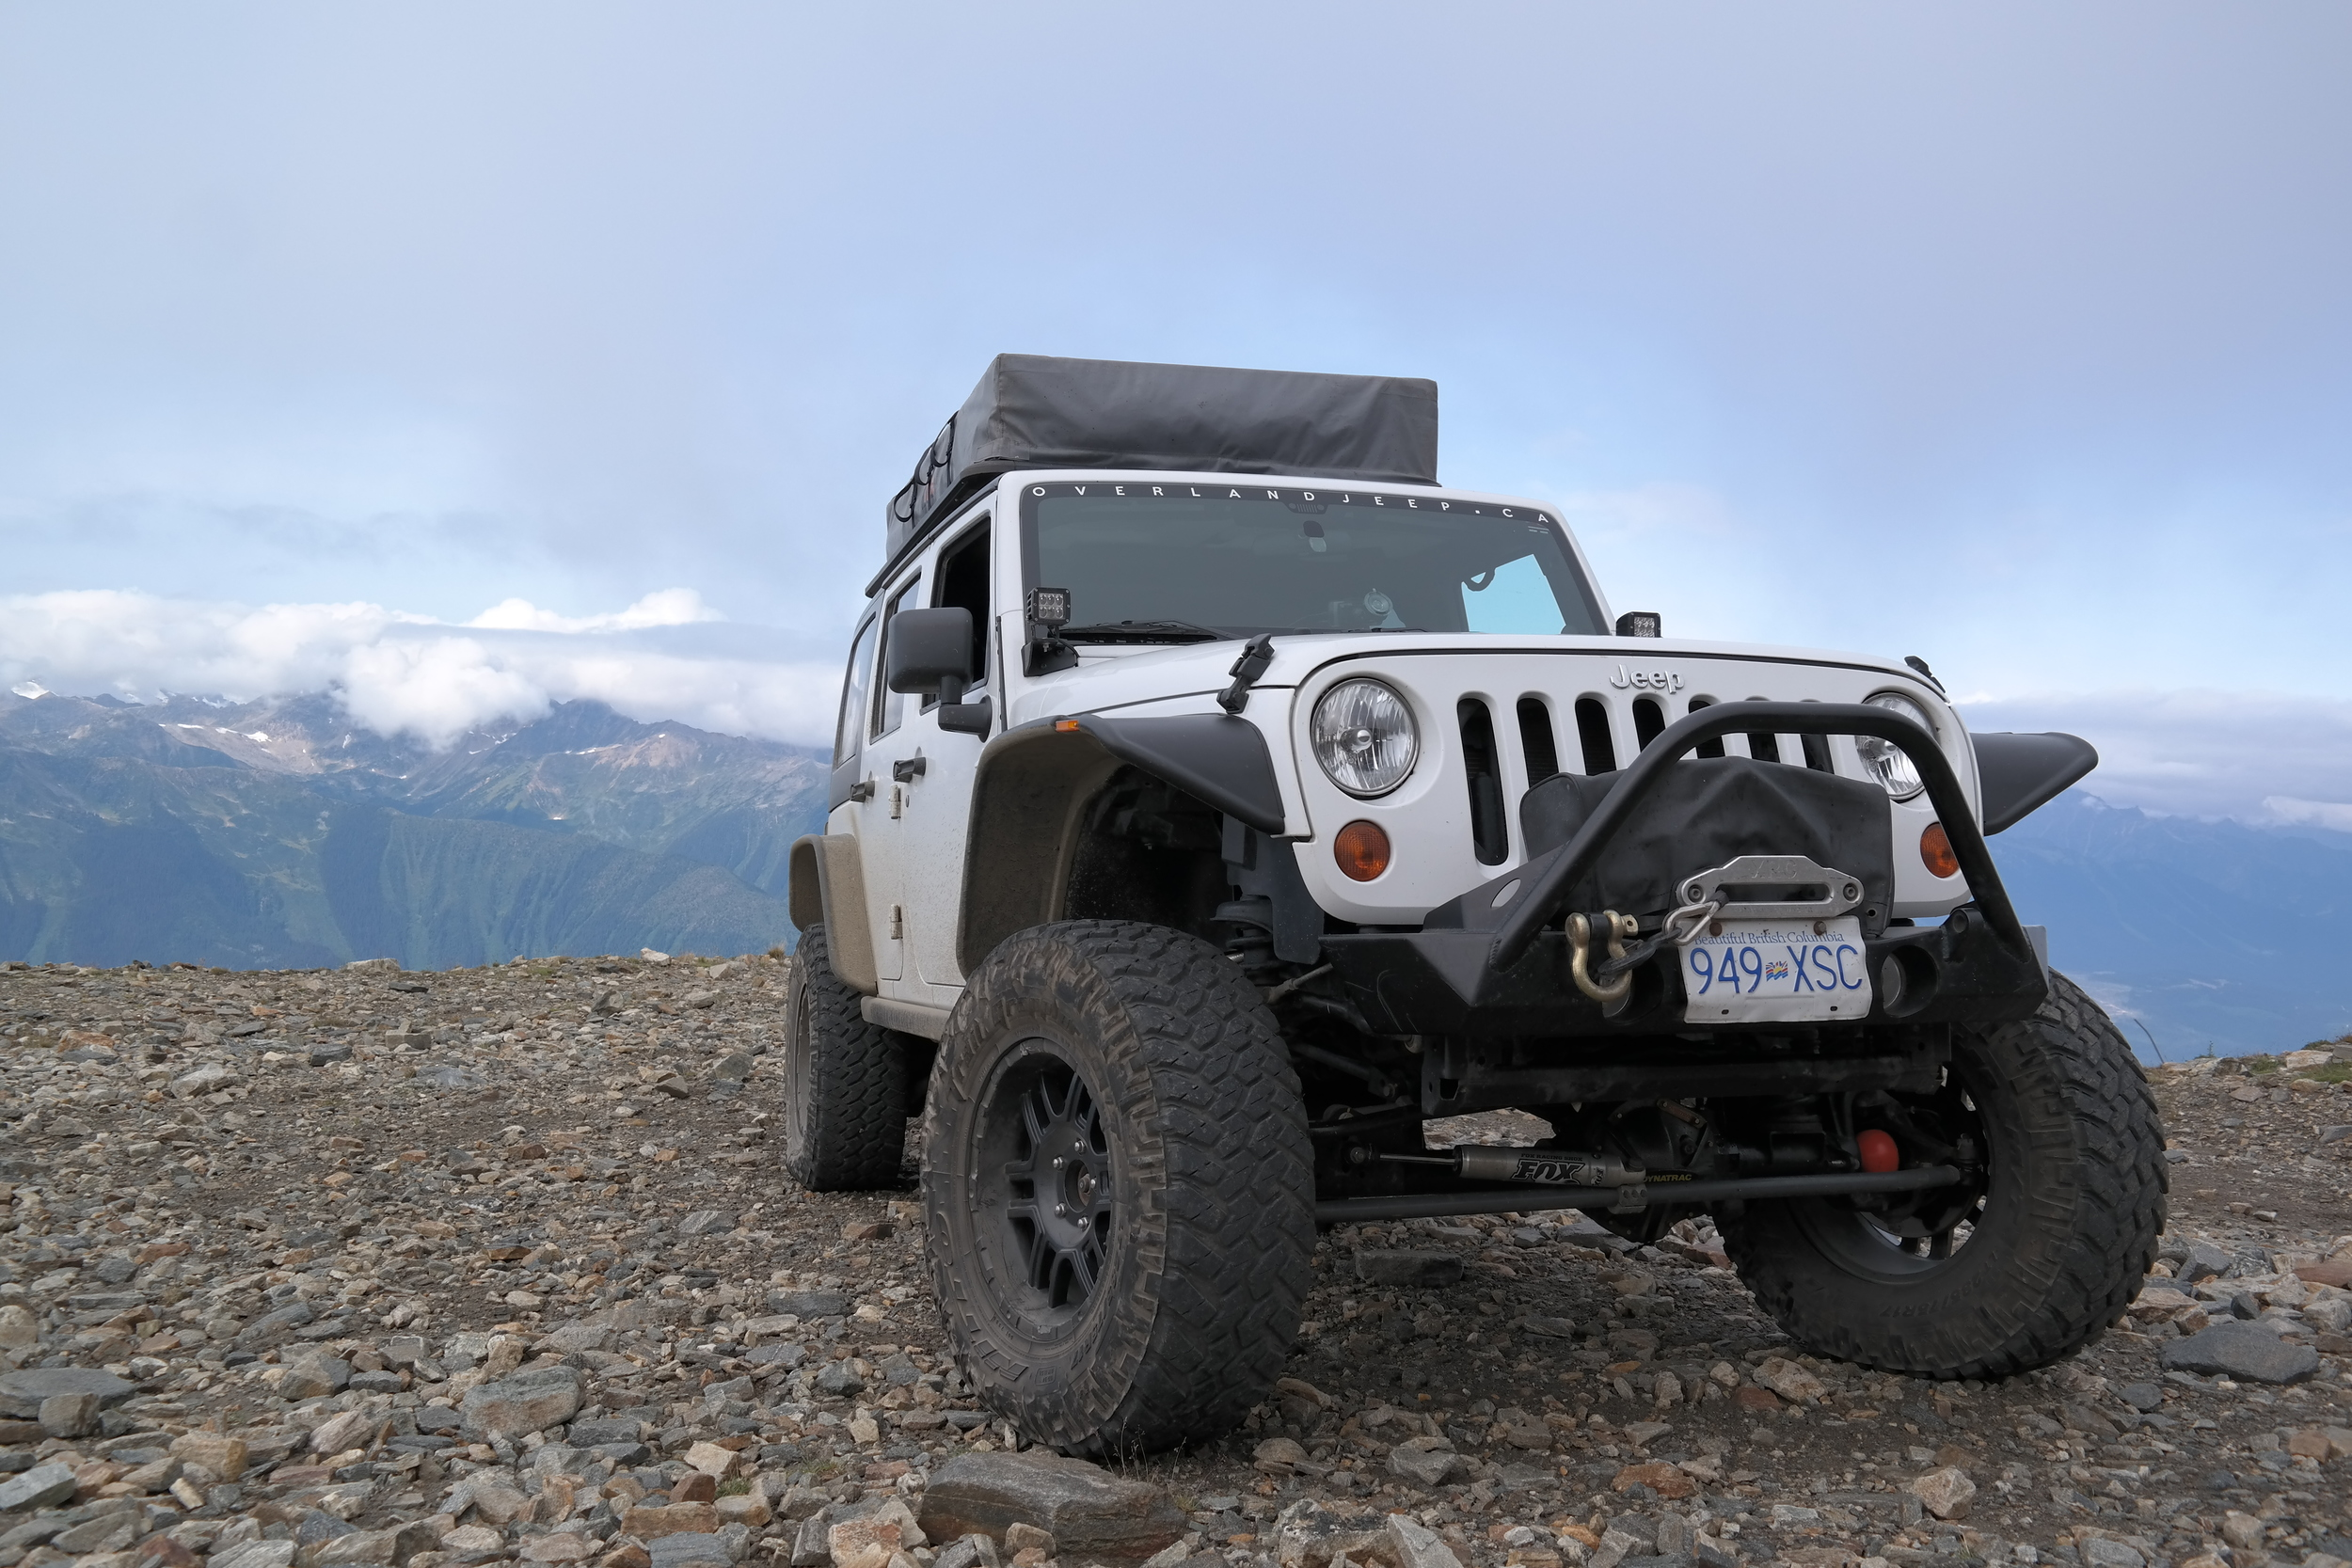 Sitting Half-Way up Canoe Mountain on a Switchback - August 2014